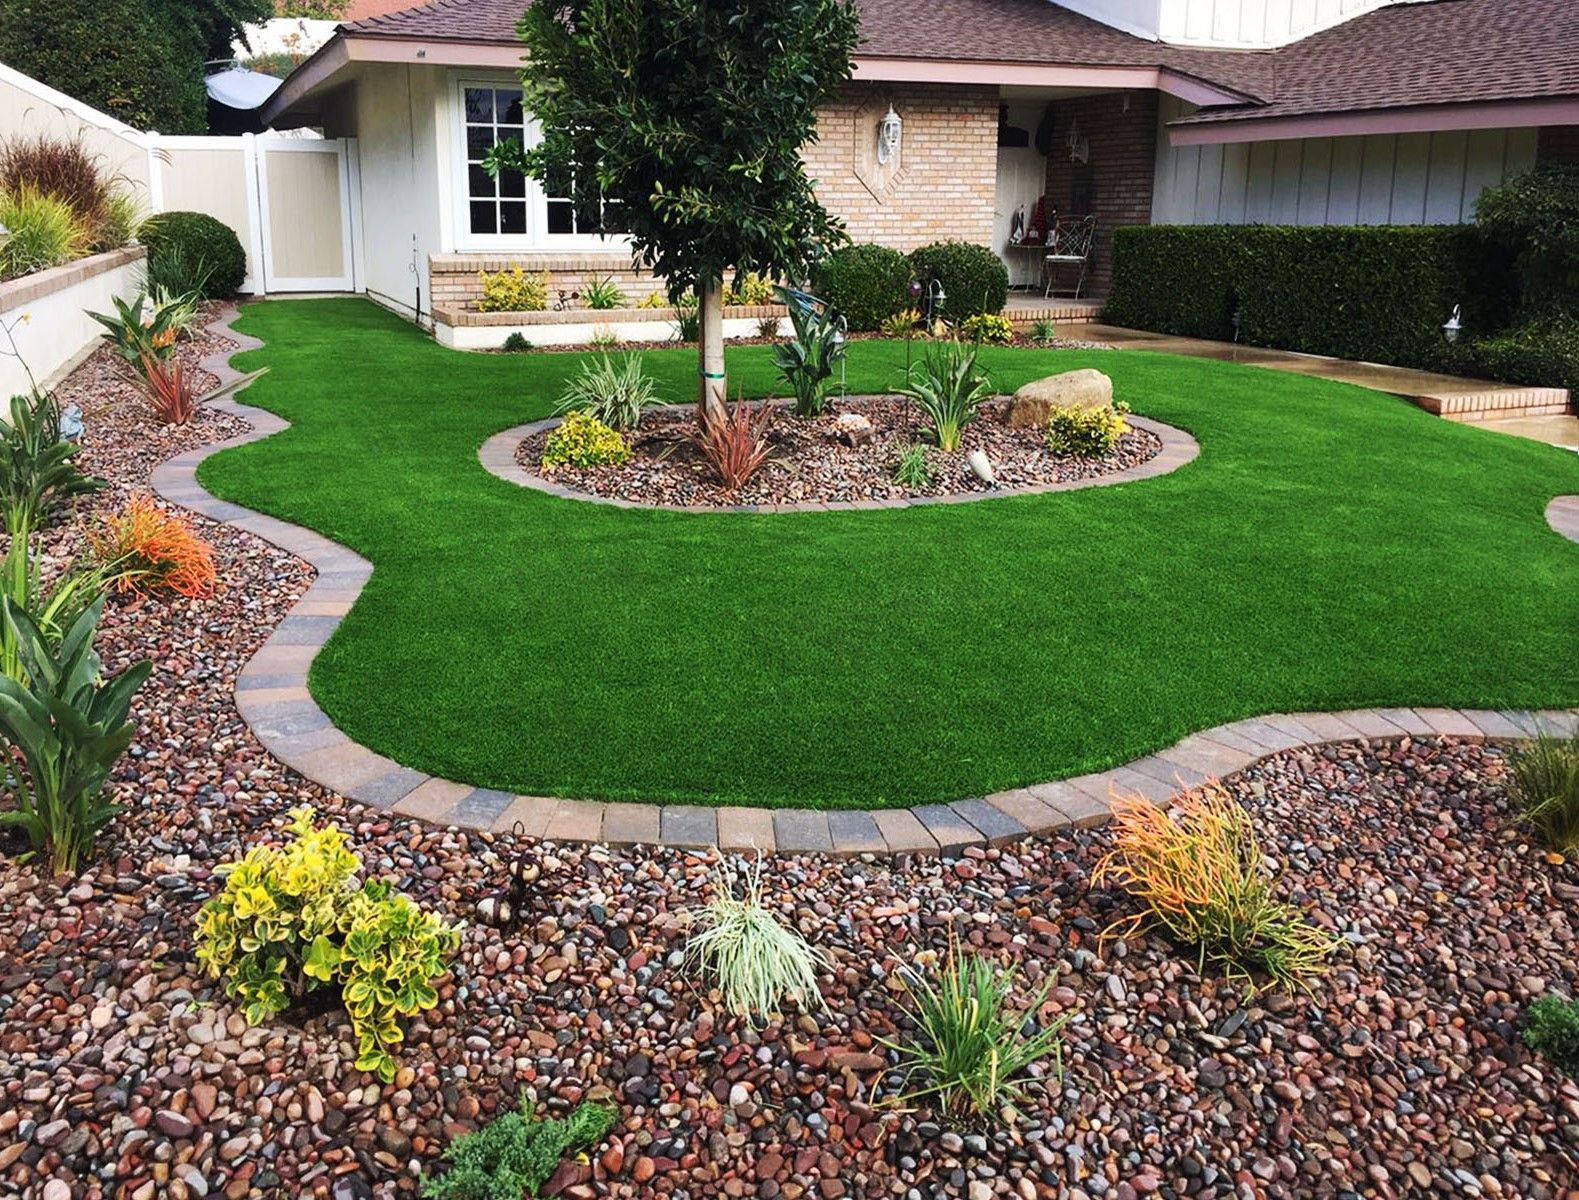 attention san diego homeowners  get your new artificial grass today  free estimate   u2022 100